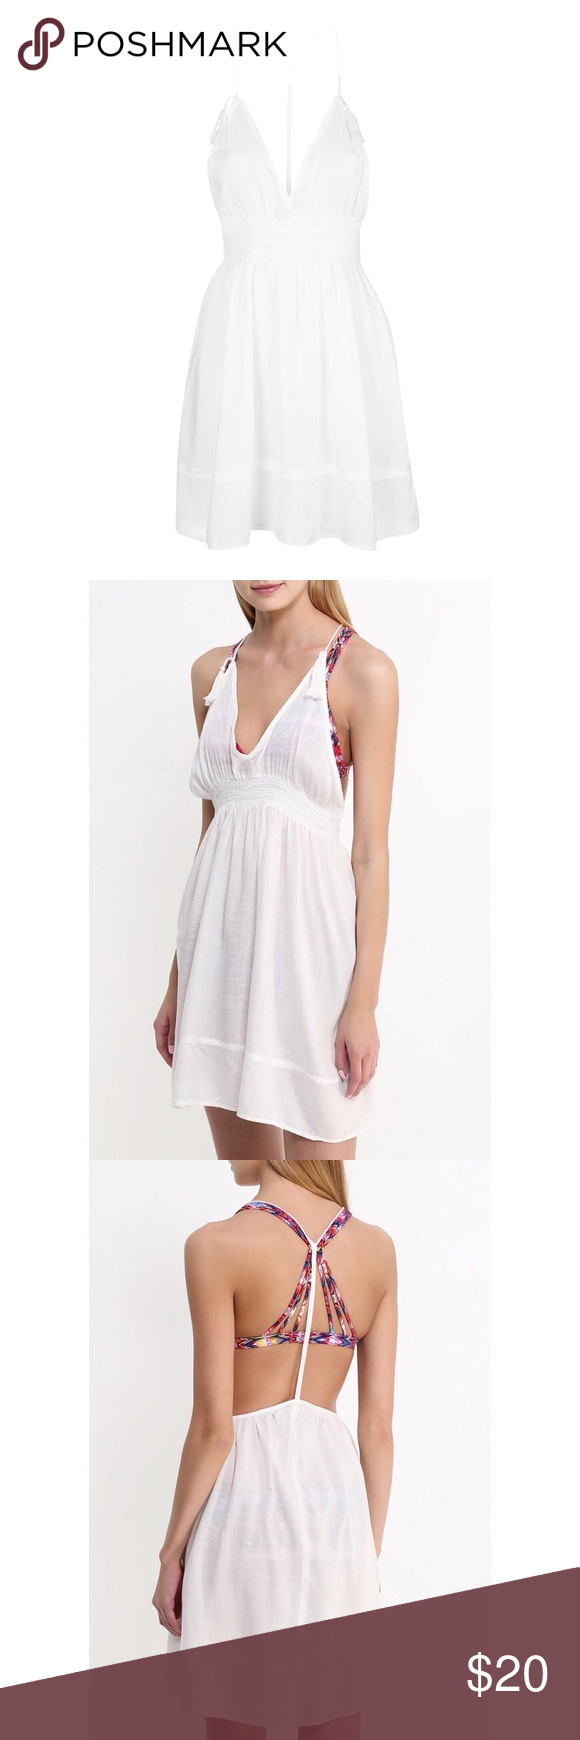 TOPSHOP Smock Tassel Sundress Perfect for complimenting sun-kissed skin, this sundress comes in a crisp white hue. Detailed with a scooped v-neckline, it's finished with a strappy design to the back with cute tassels to the shoulder. Perfect styled with sandals and a hat as the weather warms. 100% Viscose. Machine wash. Topshop Dresses Mini